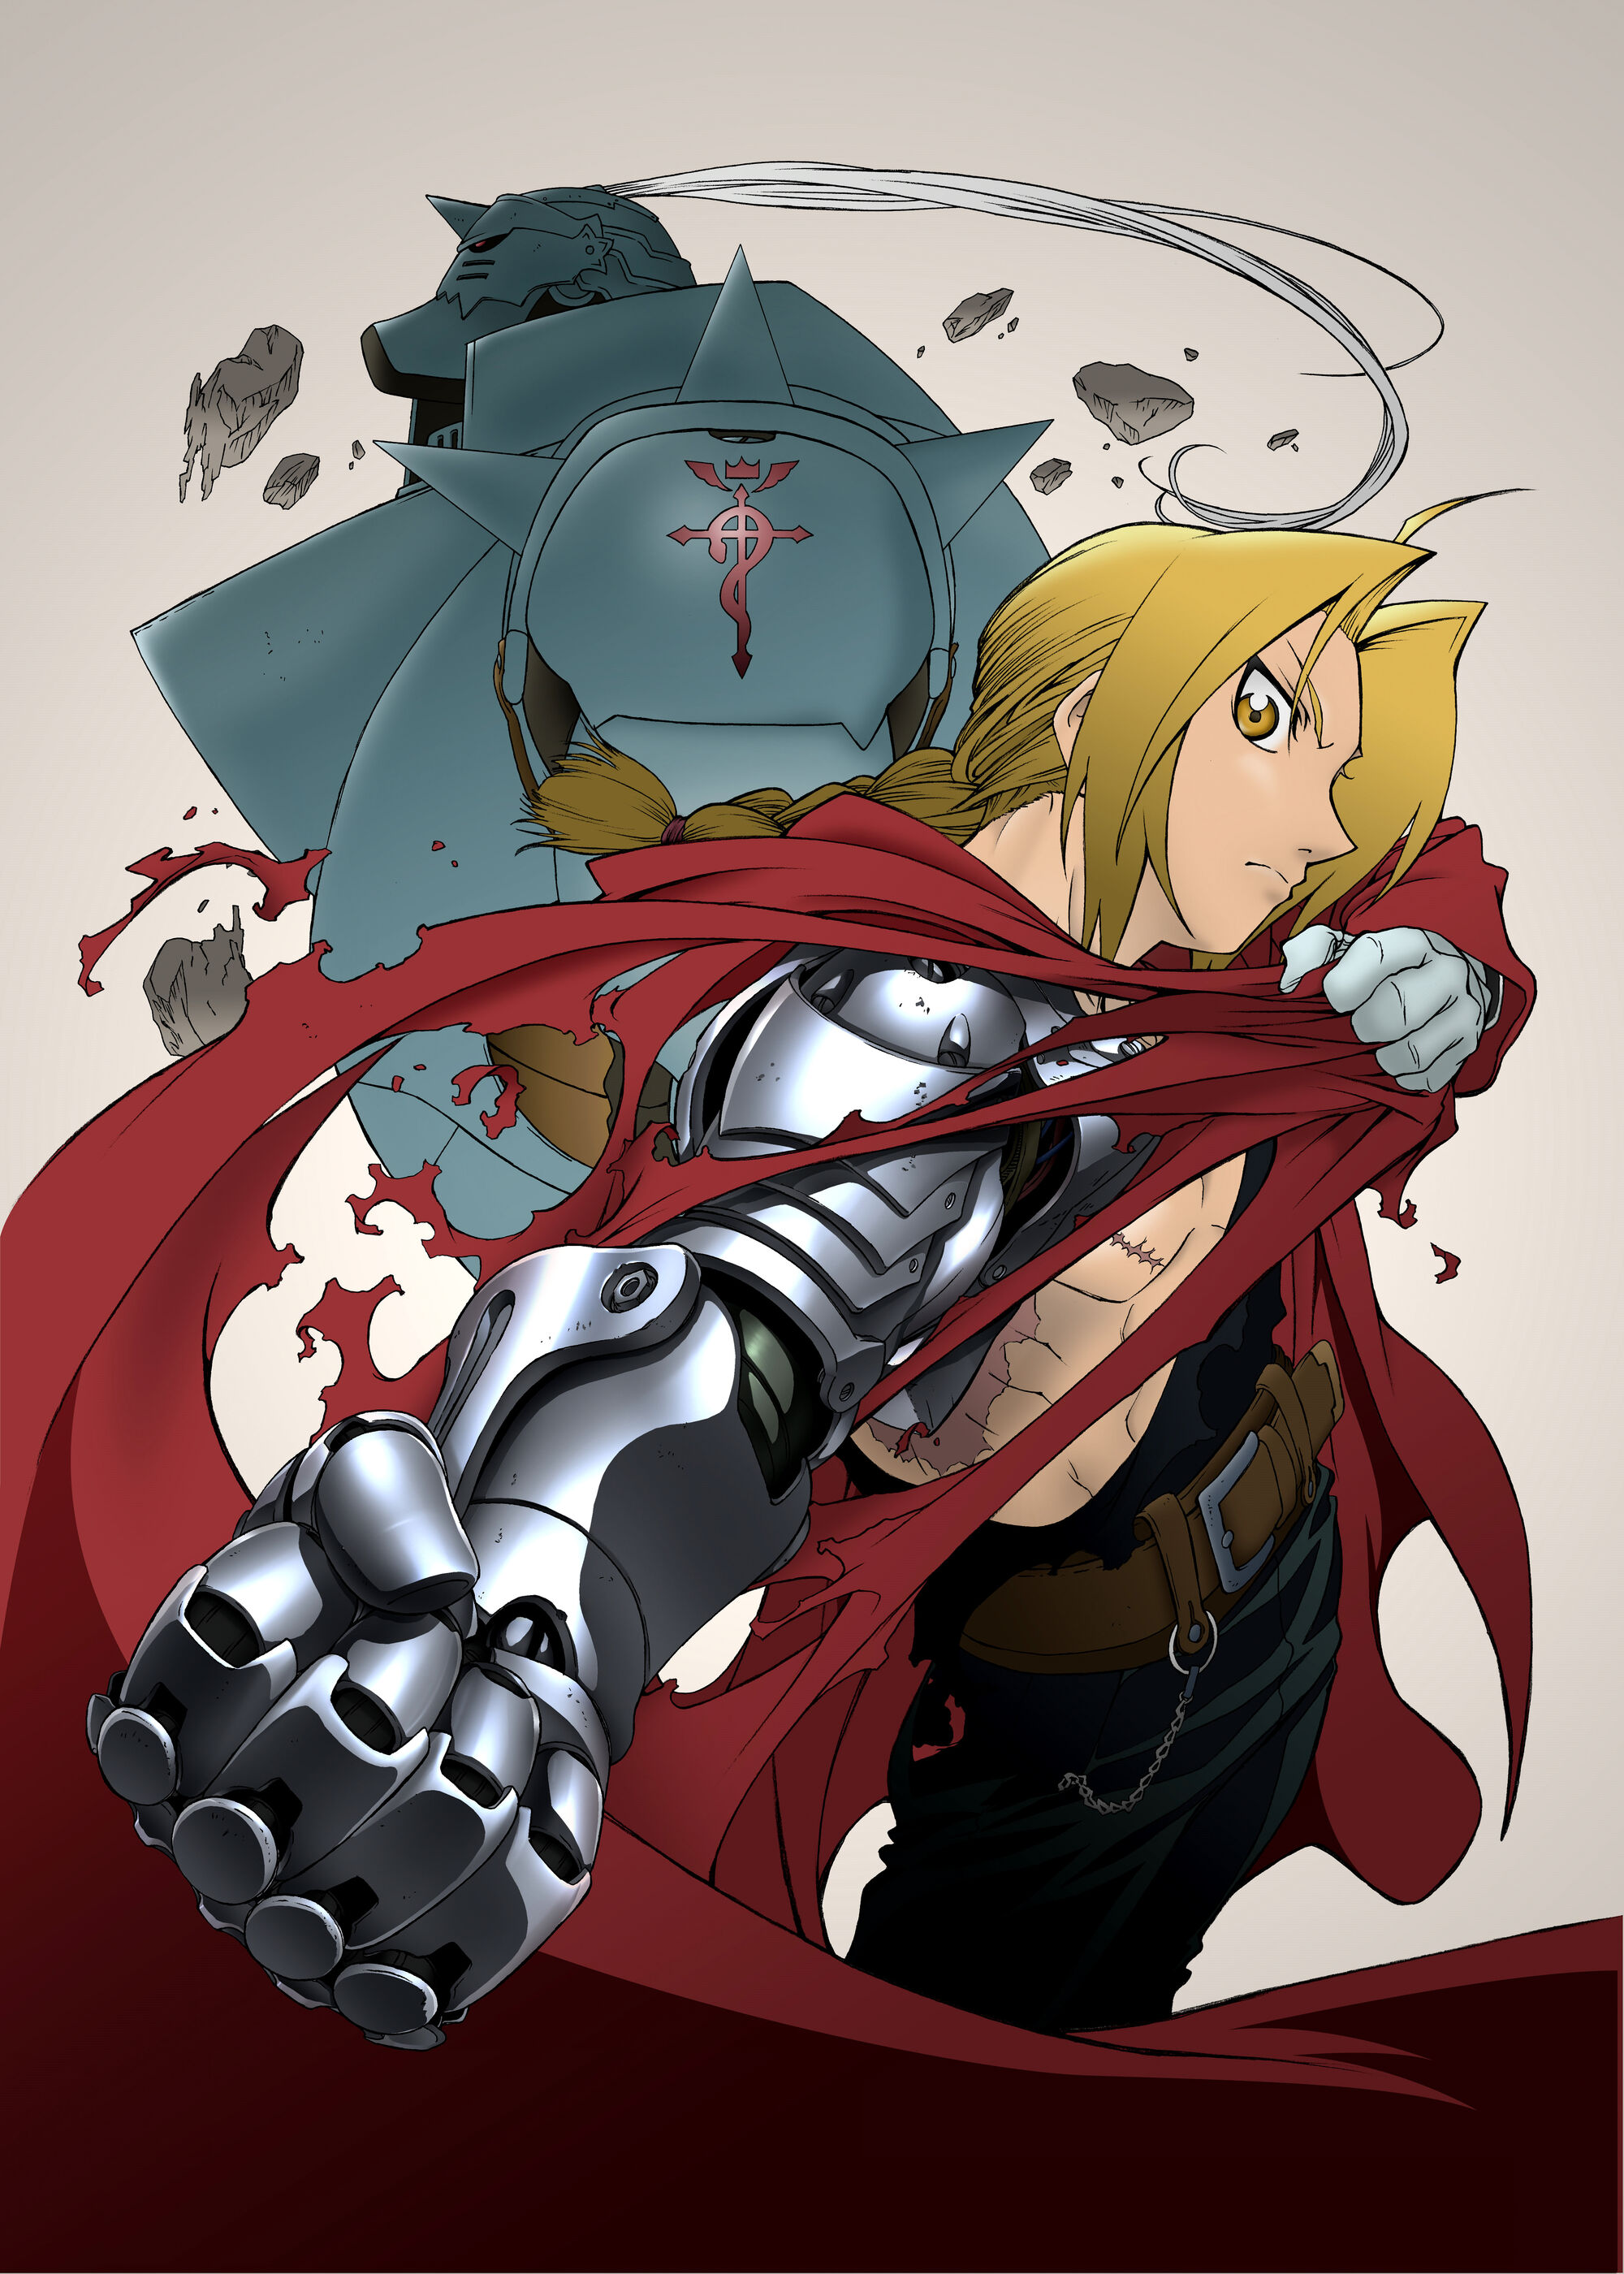 alchemist summary notes the alchemist essay student the alchemist  fullmetal alchemist anime full metal alchemist fandom fullmetal alchemist 2003 anime full metal alchemist fandom powered